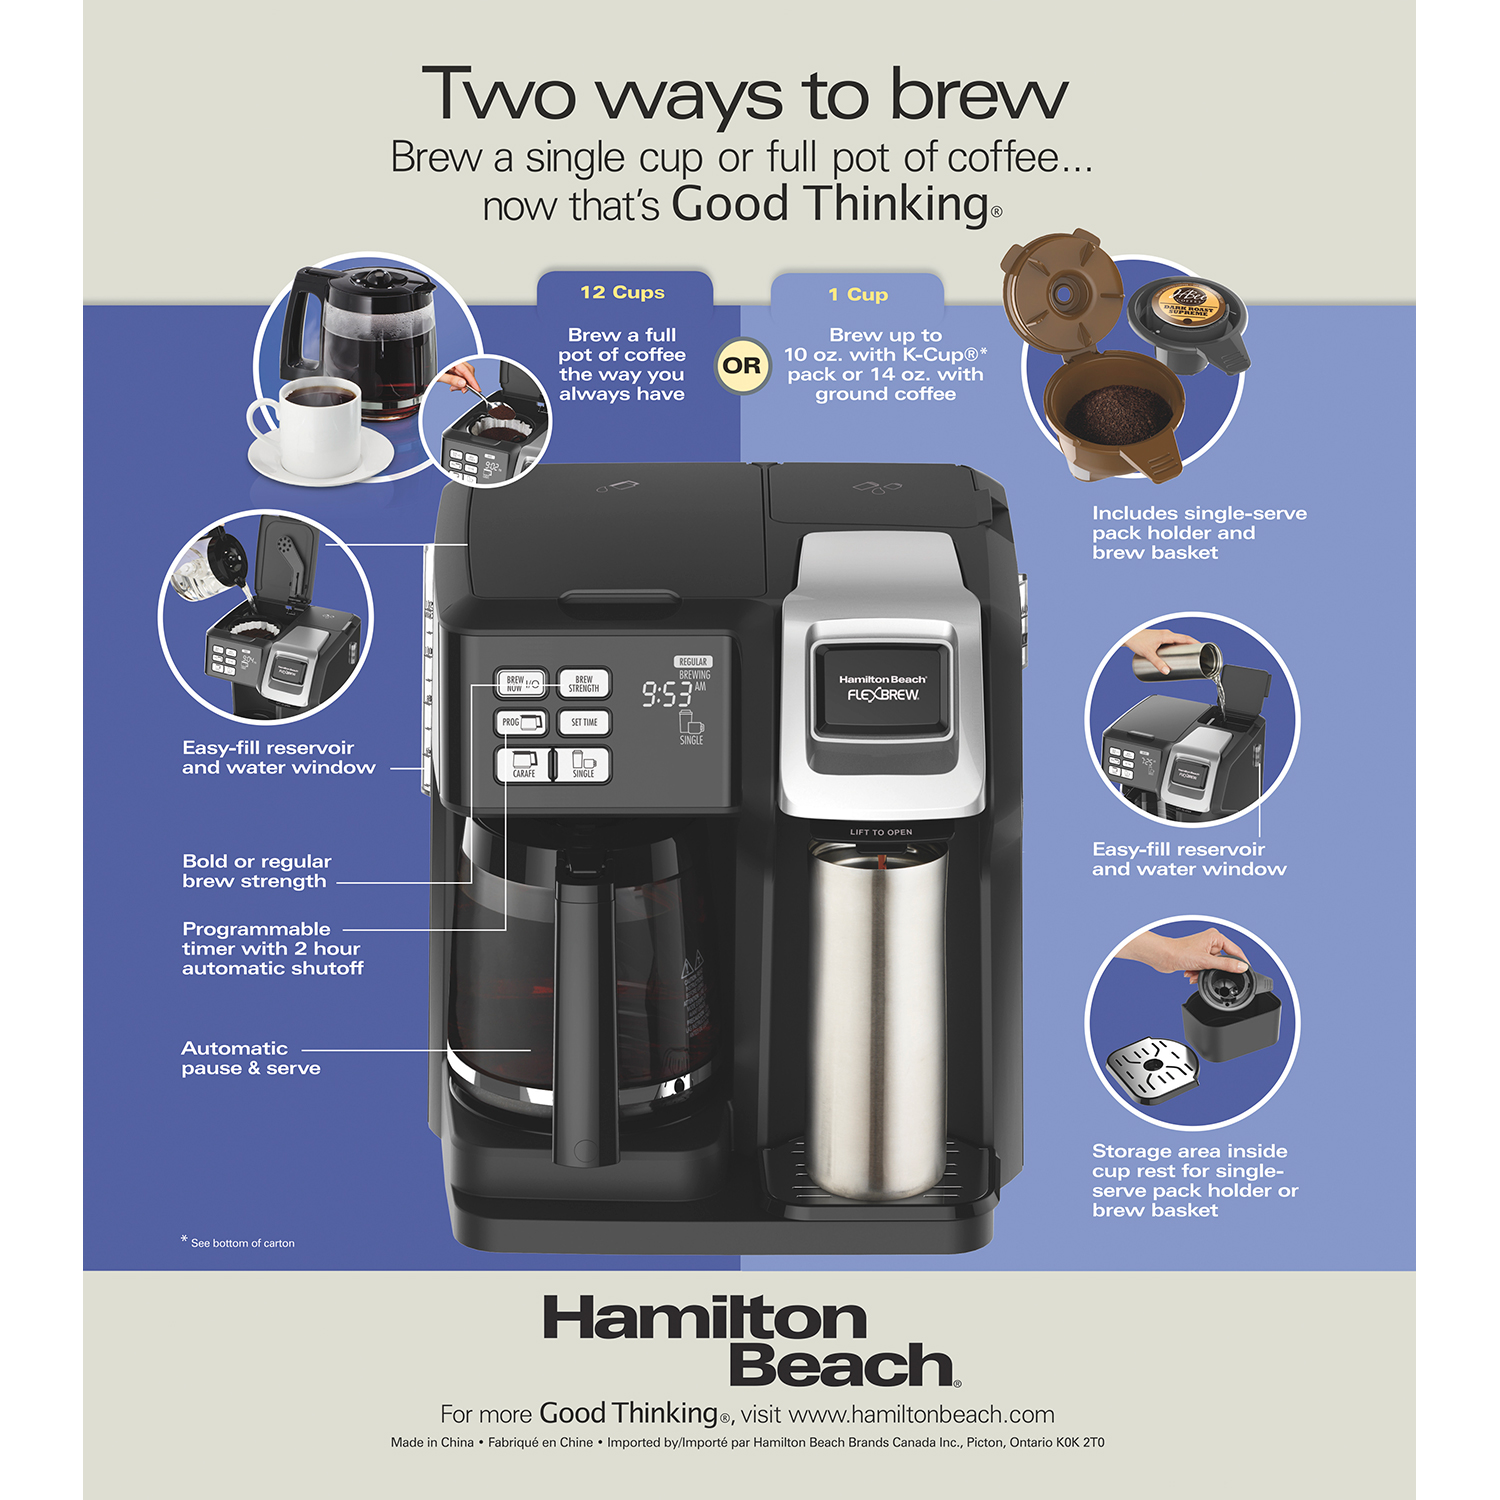 Hamilton Beach Flexbrew 2 Way Coffee Maker With 12 Cup Carafe Pod